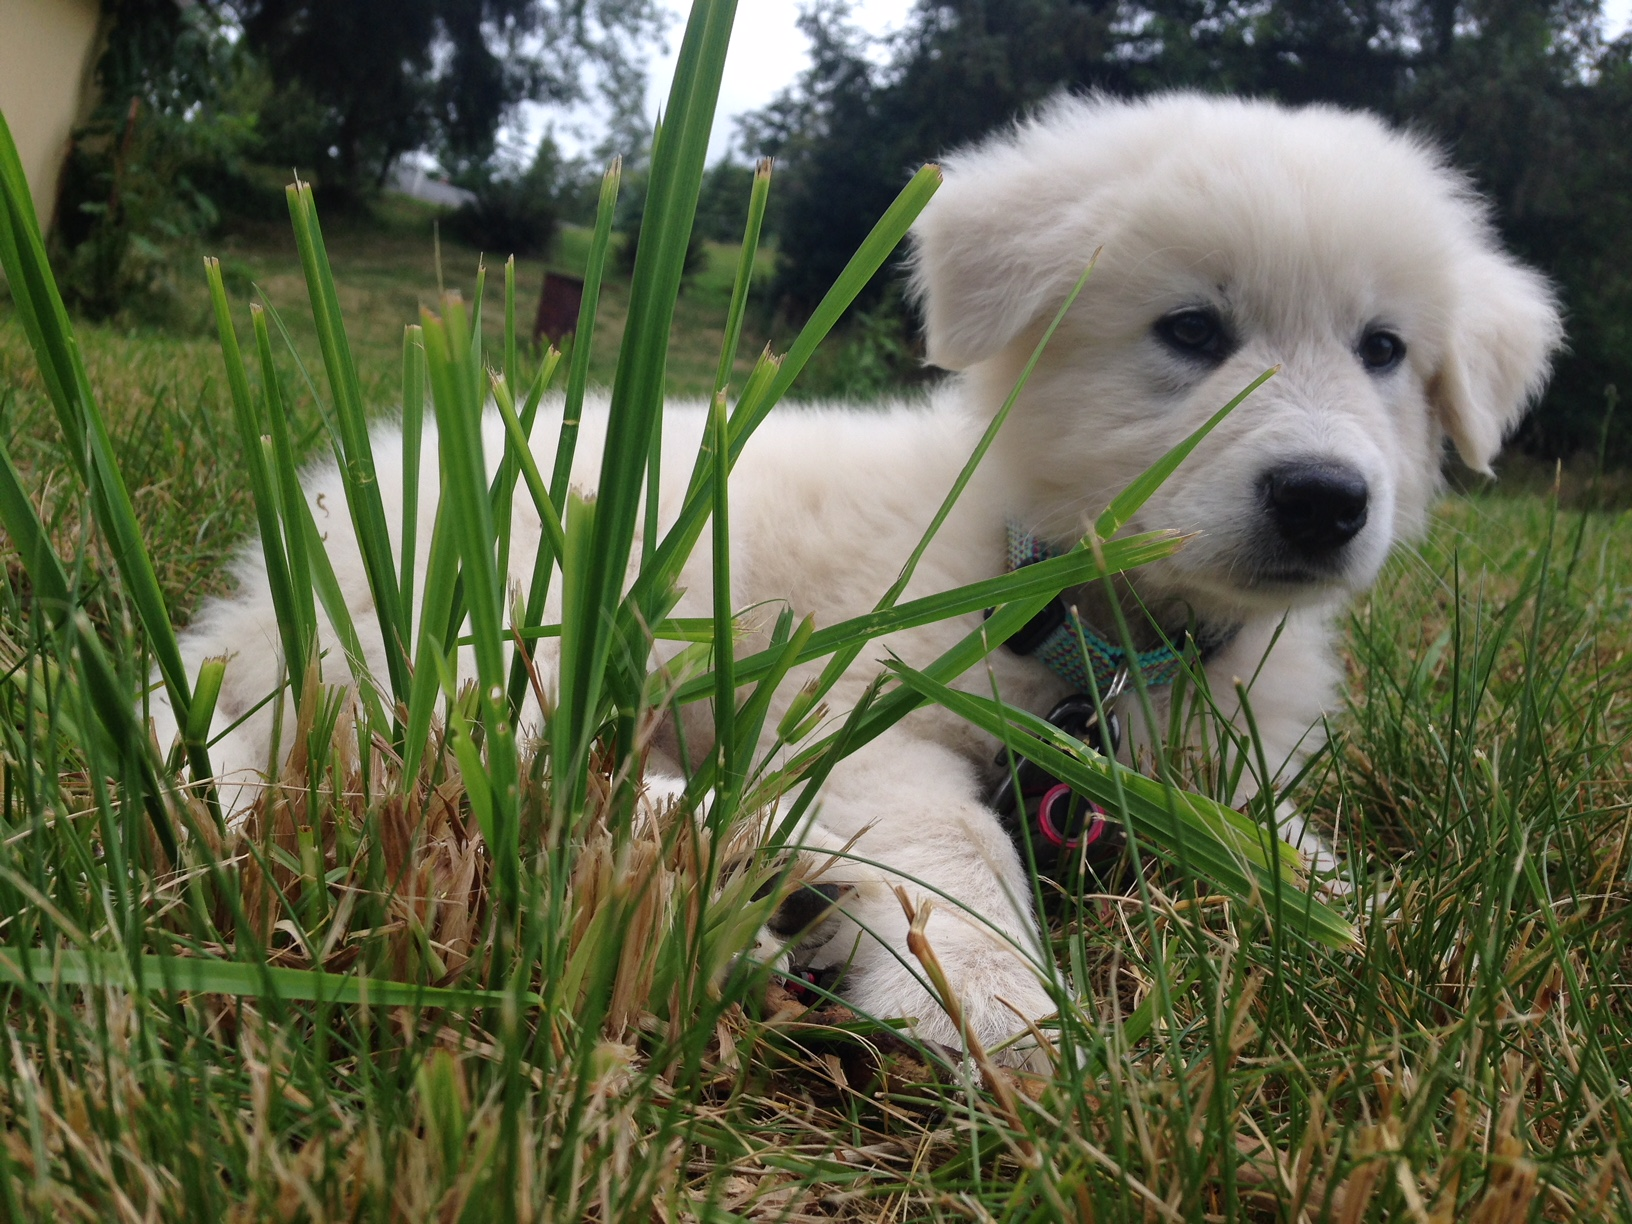 Livestock Guardian Dog - Baby Rowan